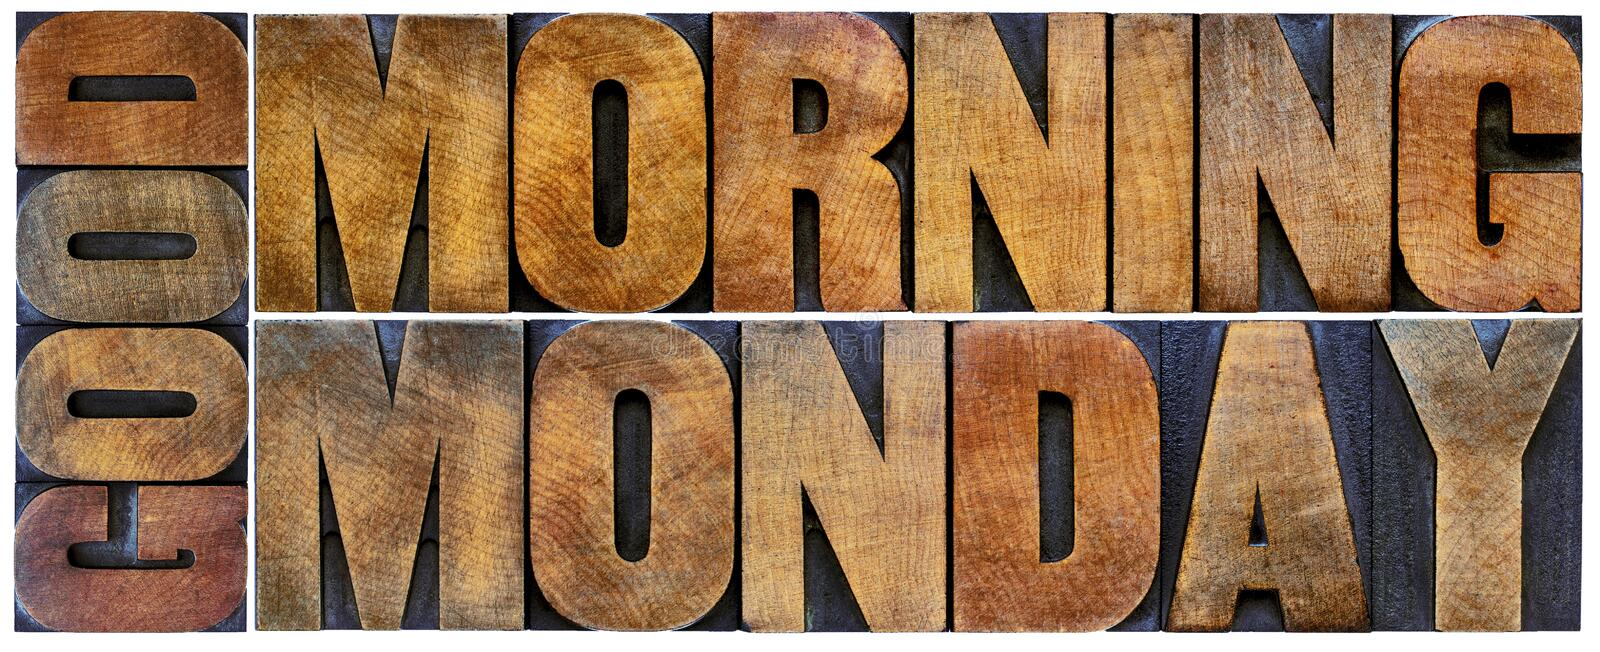 Good Morning Monday word abstract in wood type. Good Morning Monday word abstract - isolated word abstract in vintage letterpress wood type printing blocks stock photos